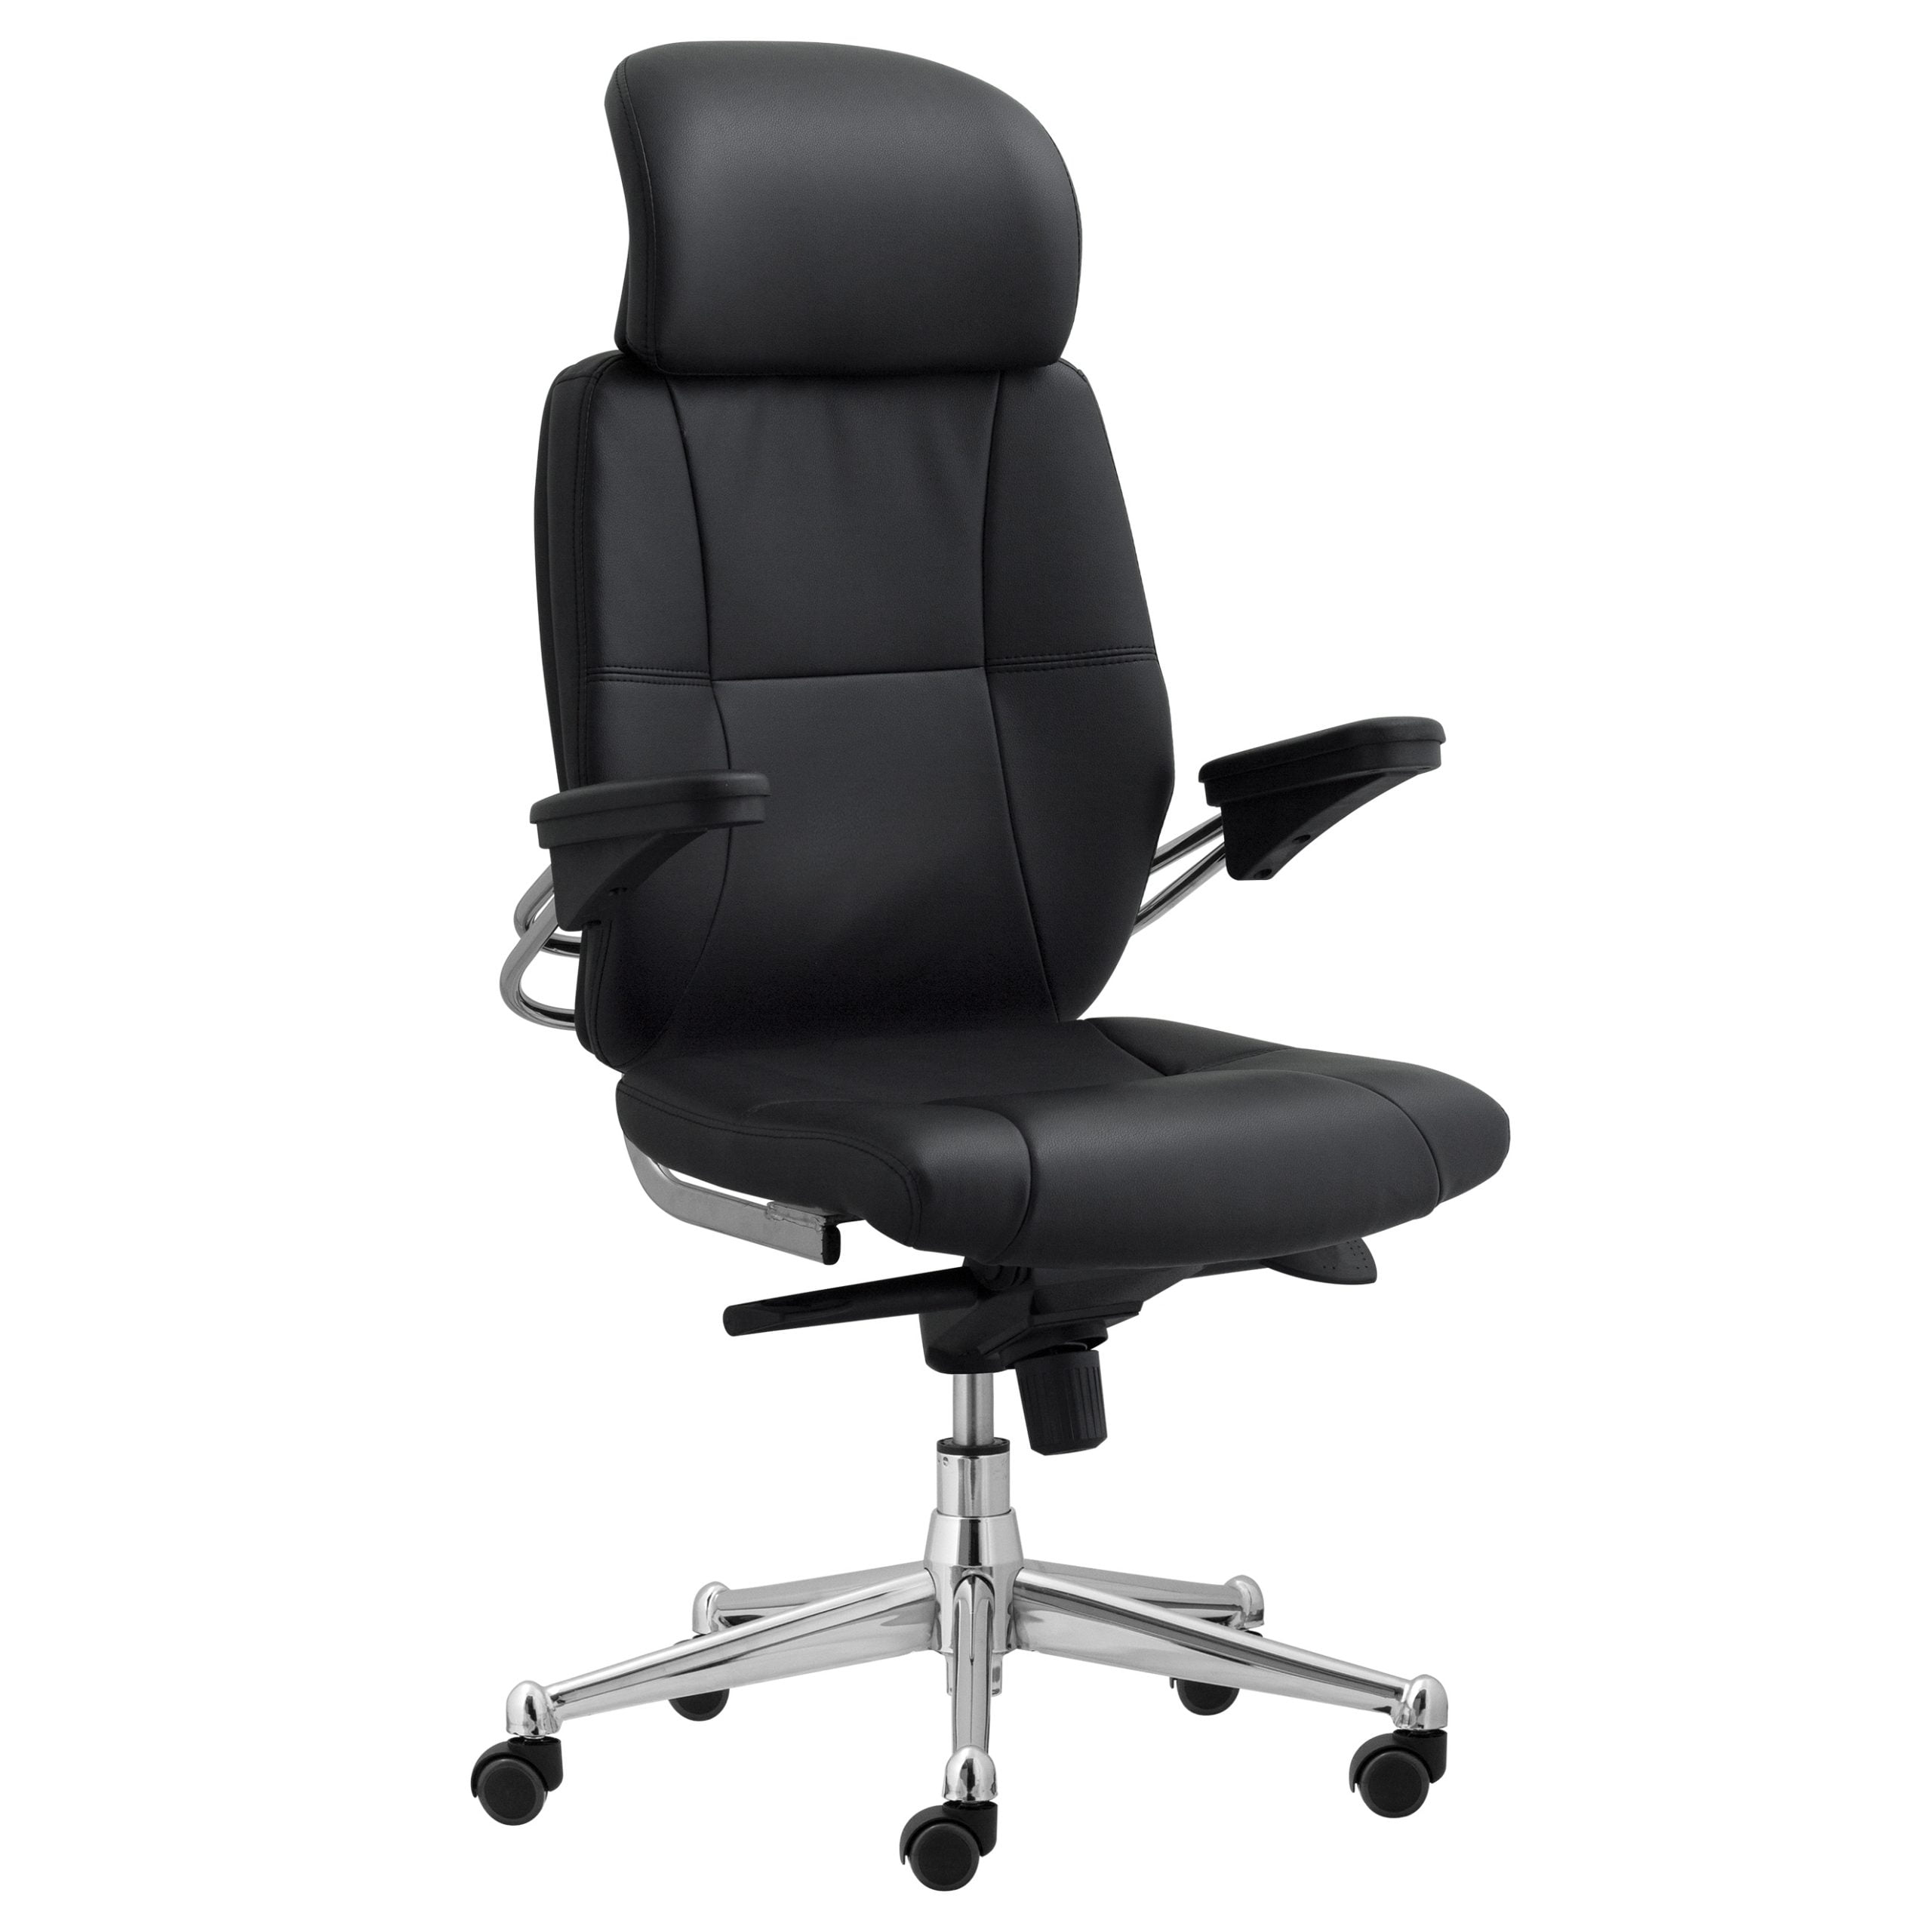 Trent Task Chair with Headrest - Black